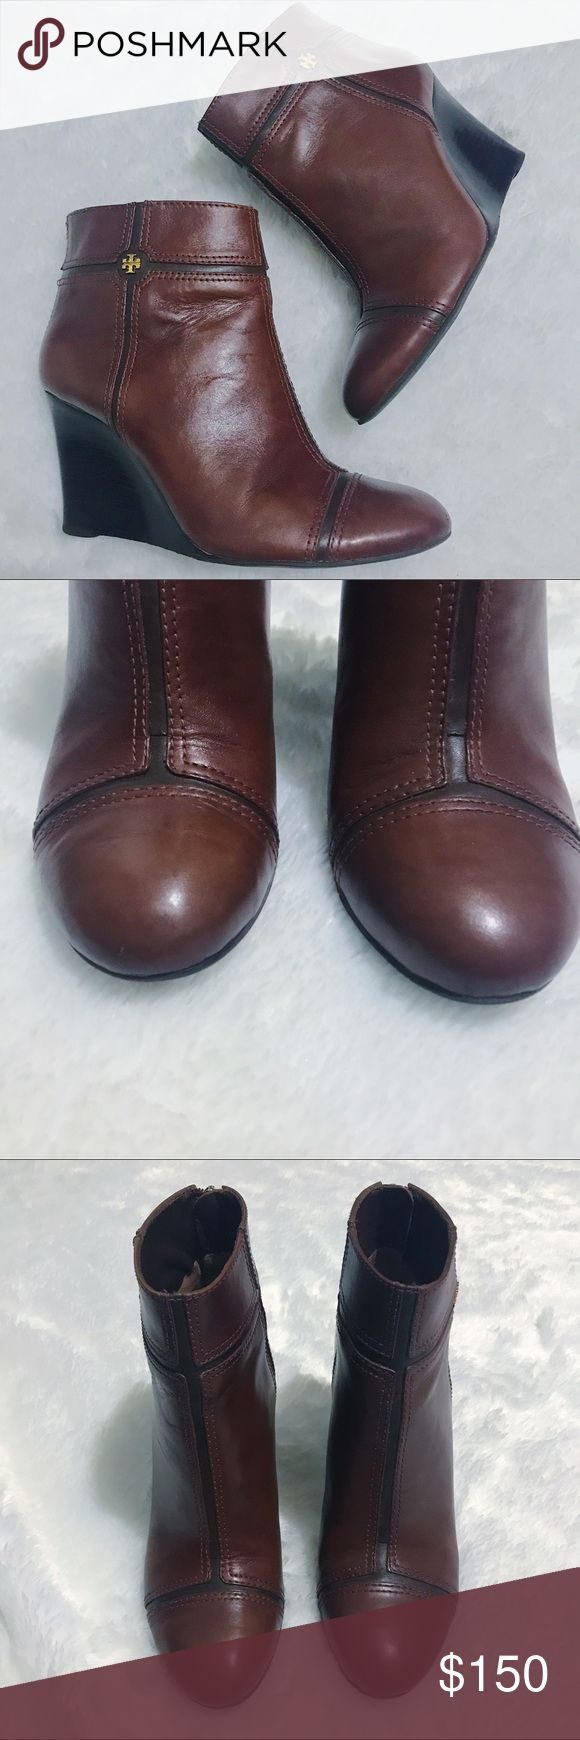 """EUC Tory Burch 8M Juliet Two Tone Wedge Booties Excellent preloved condition! Contrast leather forms geometric panels. 3 1/2"""" stacked wedge heel. Round cap toe. Small nick in the leather on the right toe. Golden signature double-""""T"""" at left ankle. Zip backstay. Padded leather insole and leather lining. Leather outsole with rubber insets for traction. Some marks on the sole typical of some wear. """"Juliet"""" is made in Brazil. Tory Burch Shoes Ankle Boots & Booties"""